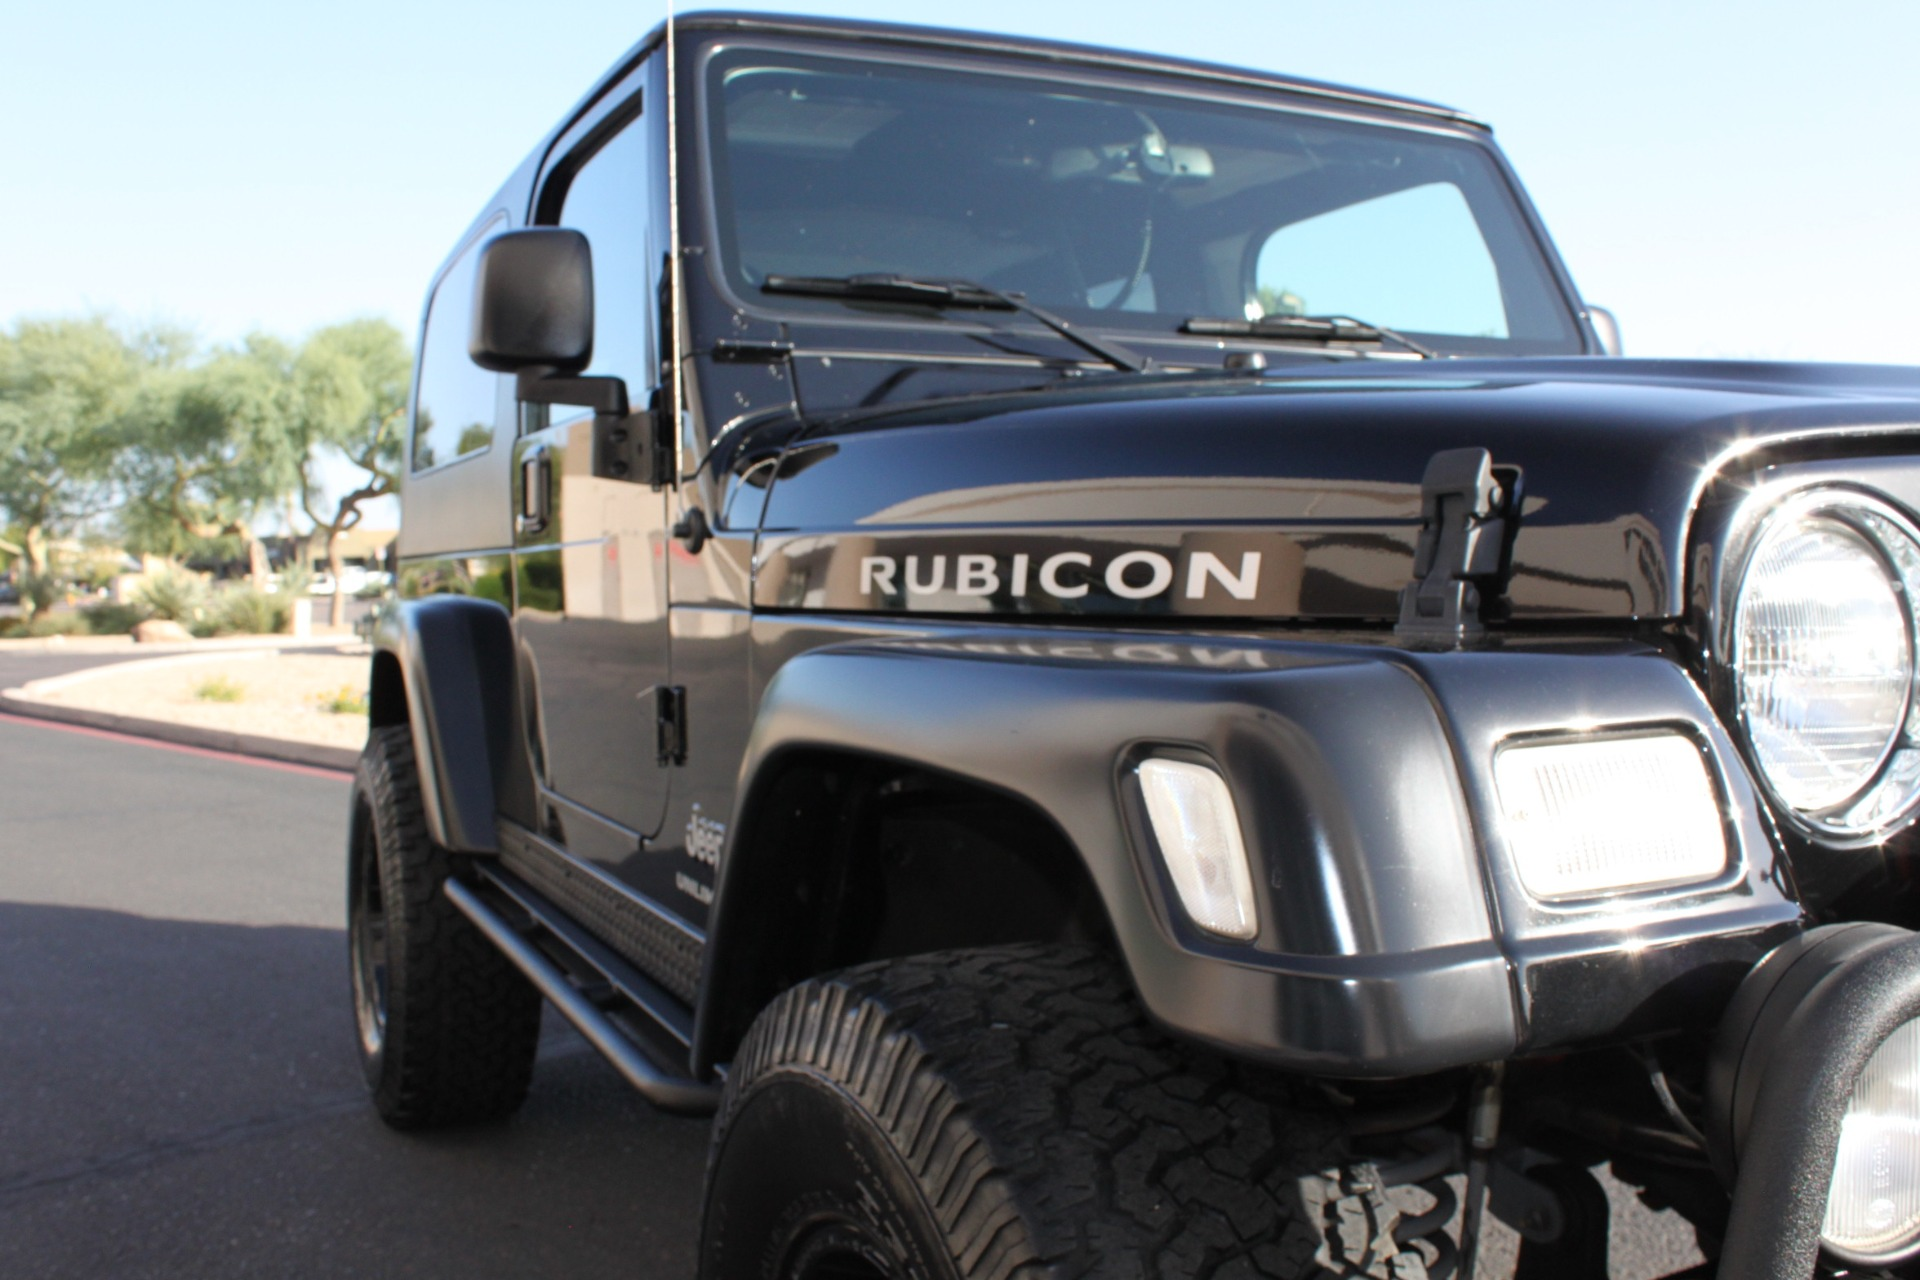 Used-2006-Jeep-Wrangler-Unlimited-Rubicon-LWB-LS430